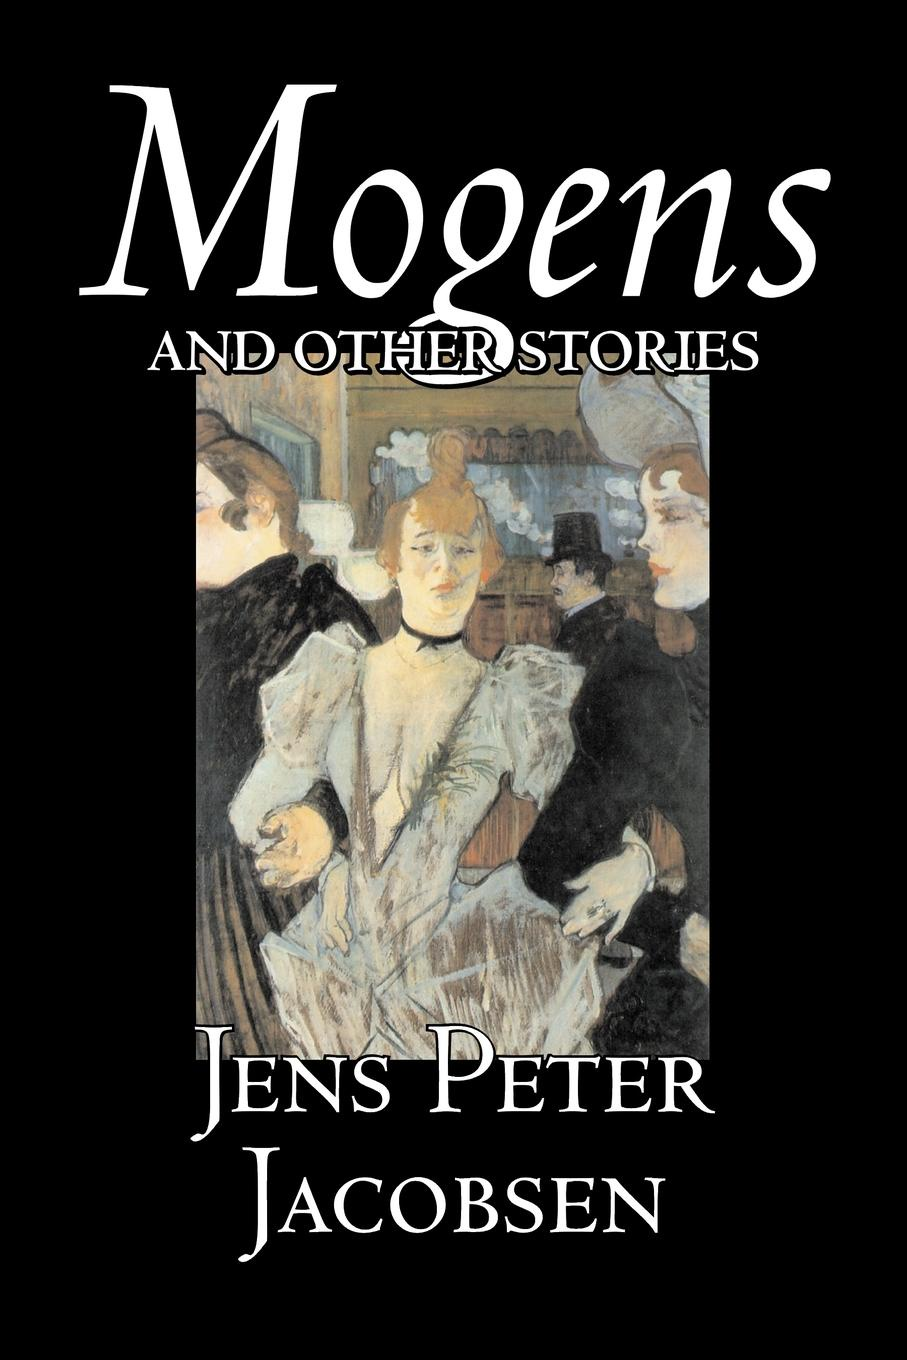 лучшая цена Jens Peter Jacobsen, Anna Grabow Mogens and Other Stories by Jens Peter Jacobsen, Fiction, Short Stories, Classics, Literary